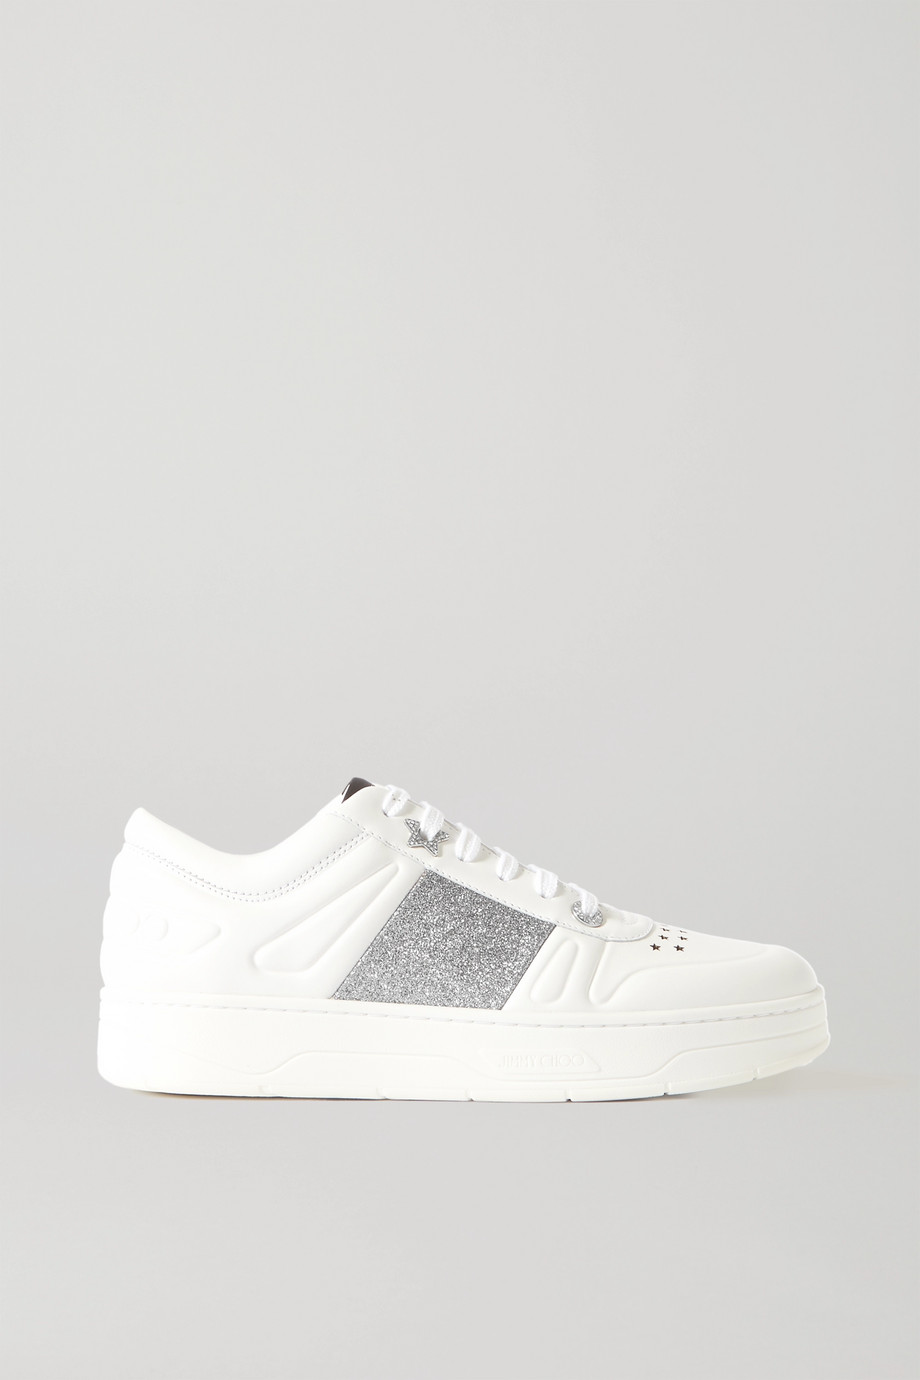 Jimmy Choo Hawaii crystal-embellished glittered perforated leather sneakers